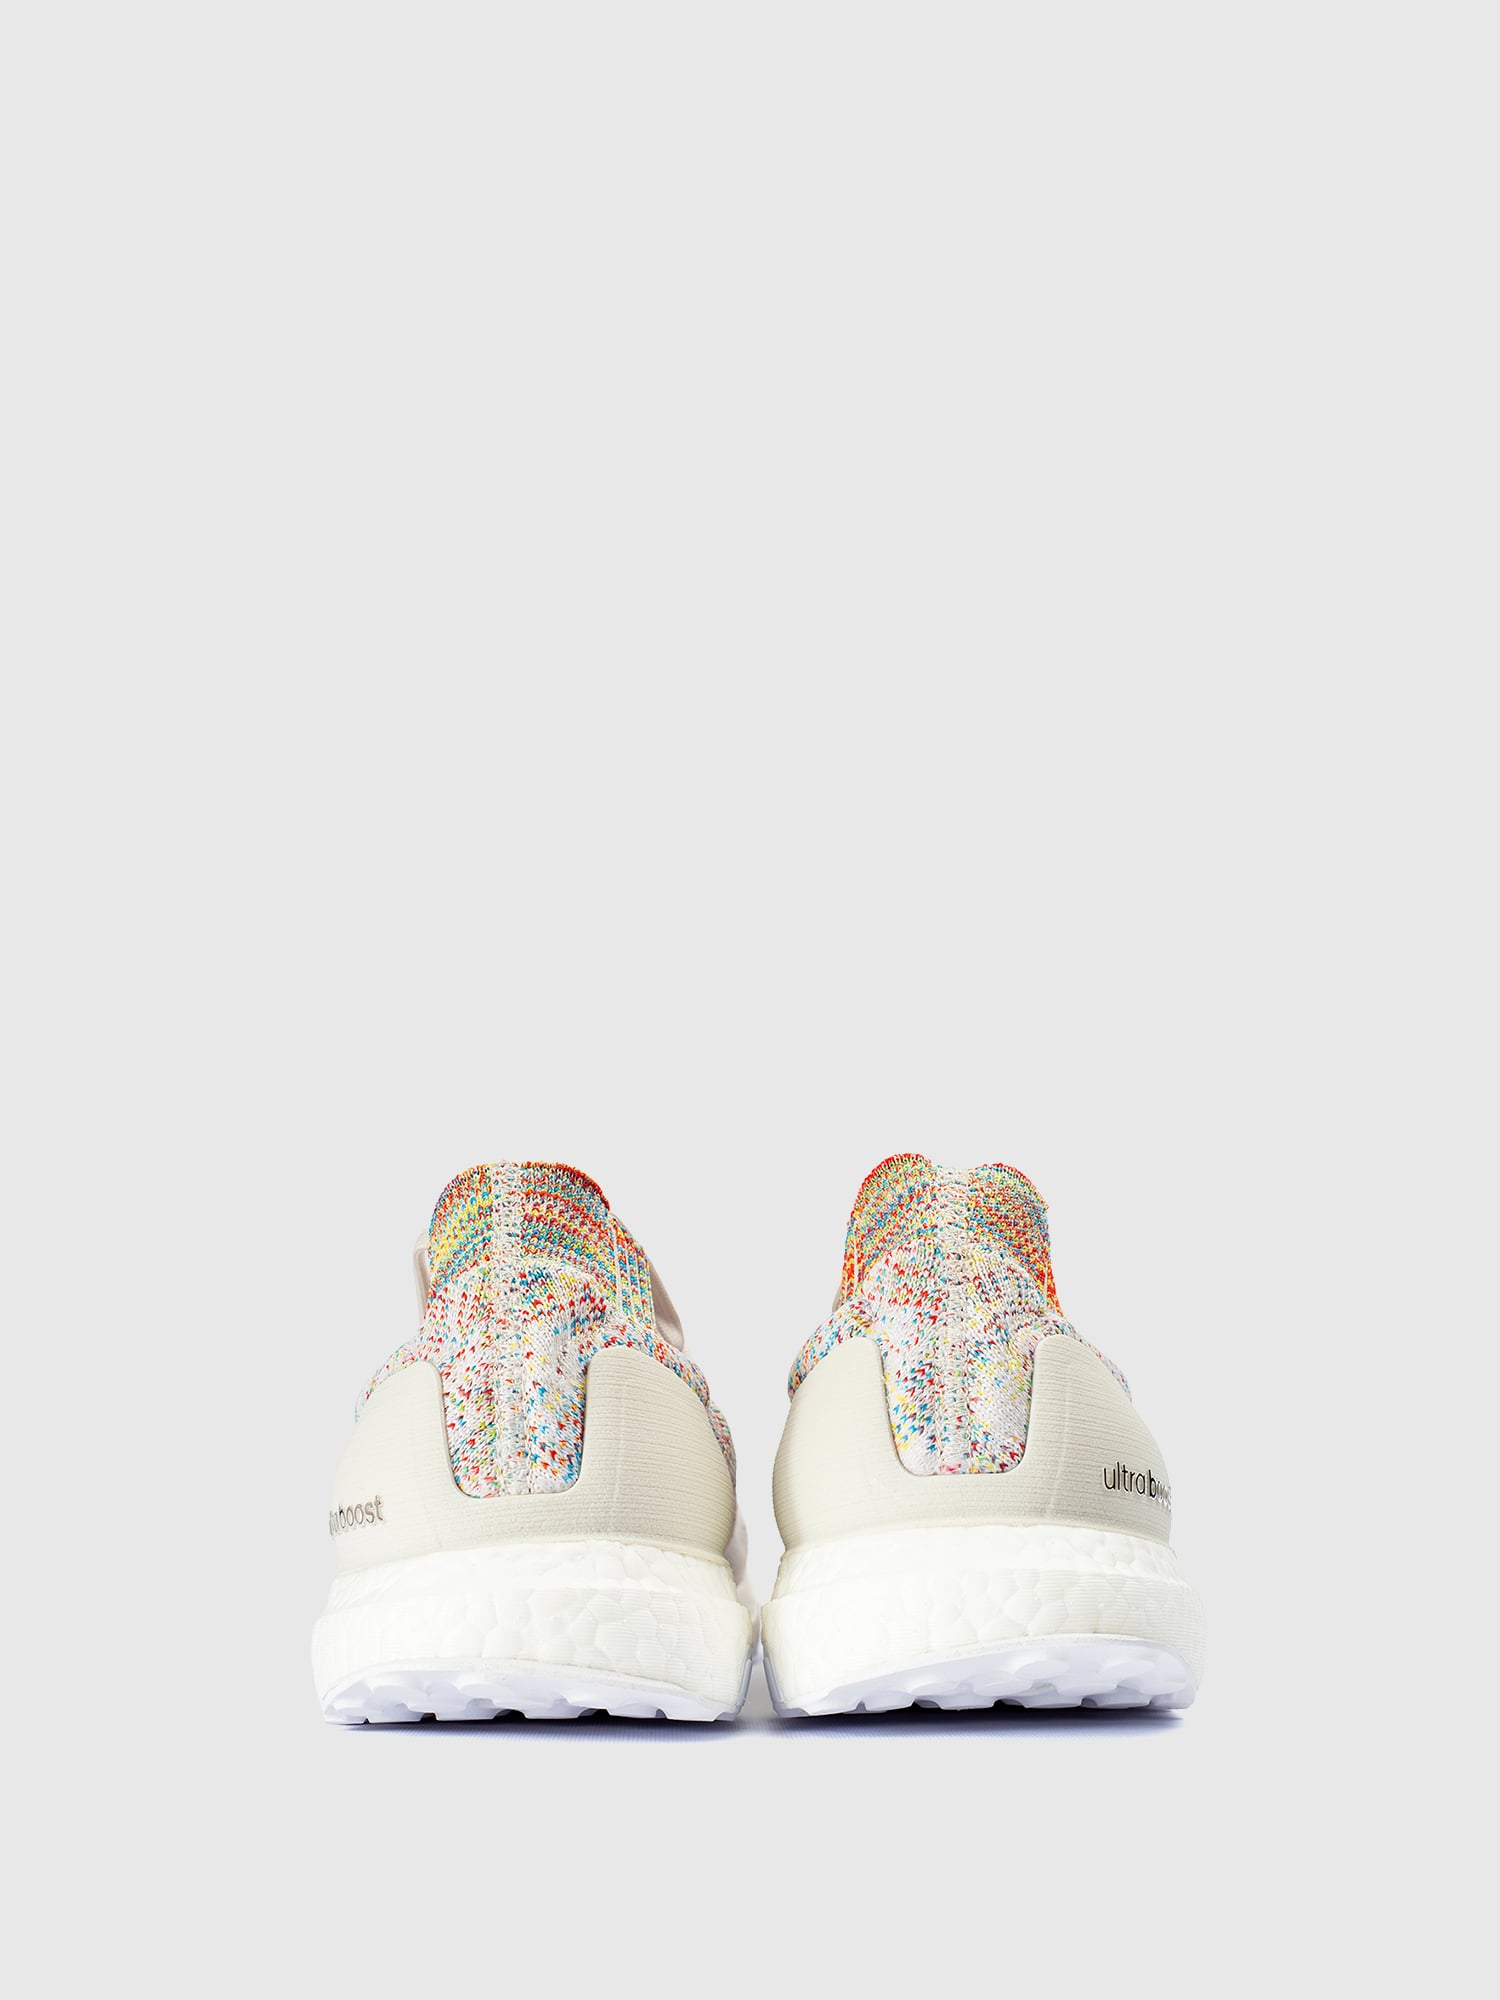 Adidas Ultra Boost Uncaged White Multi